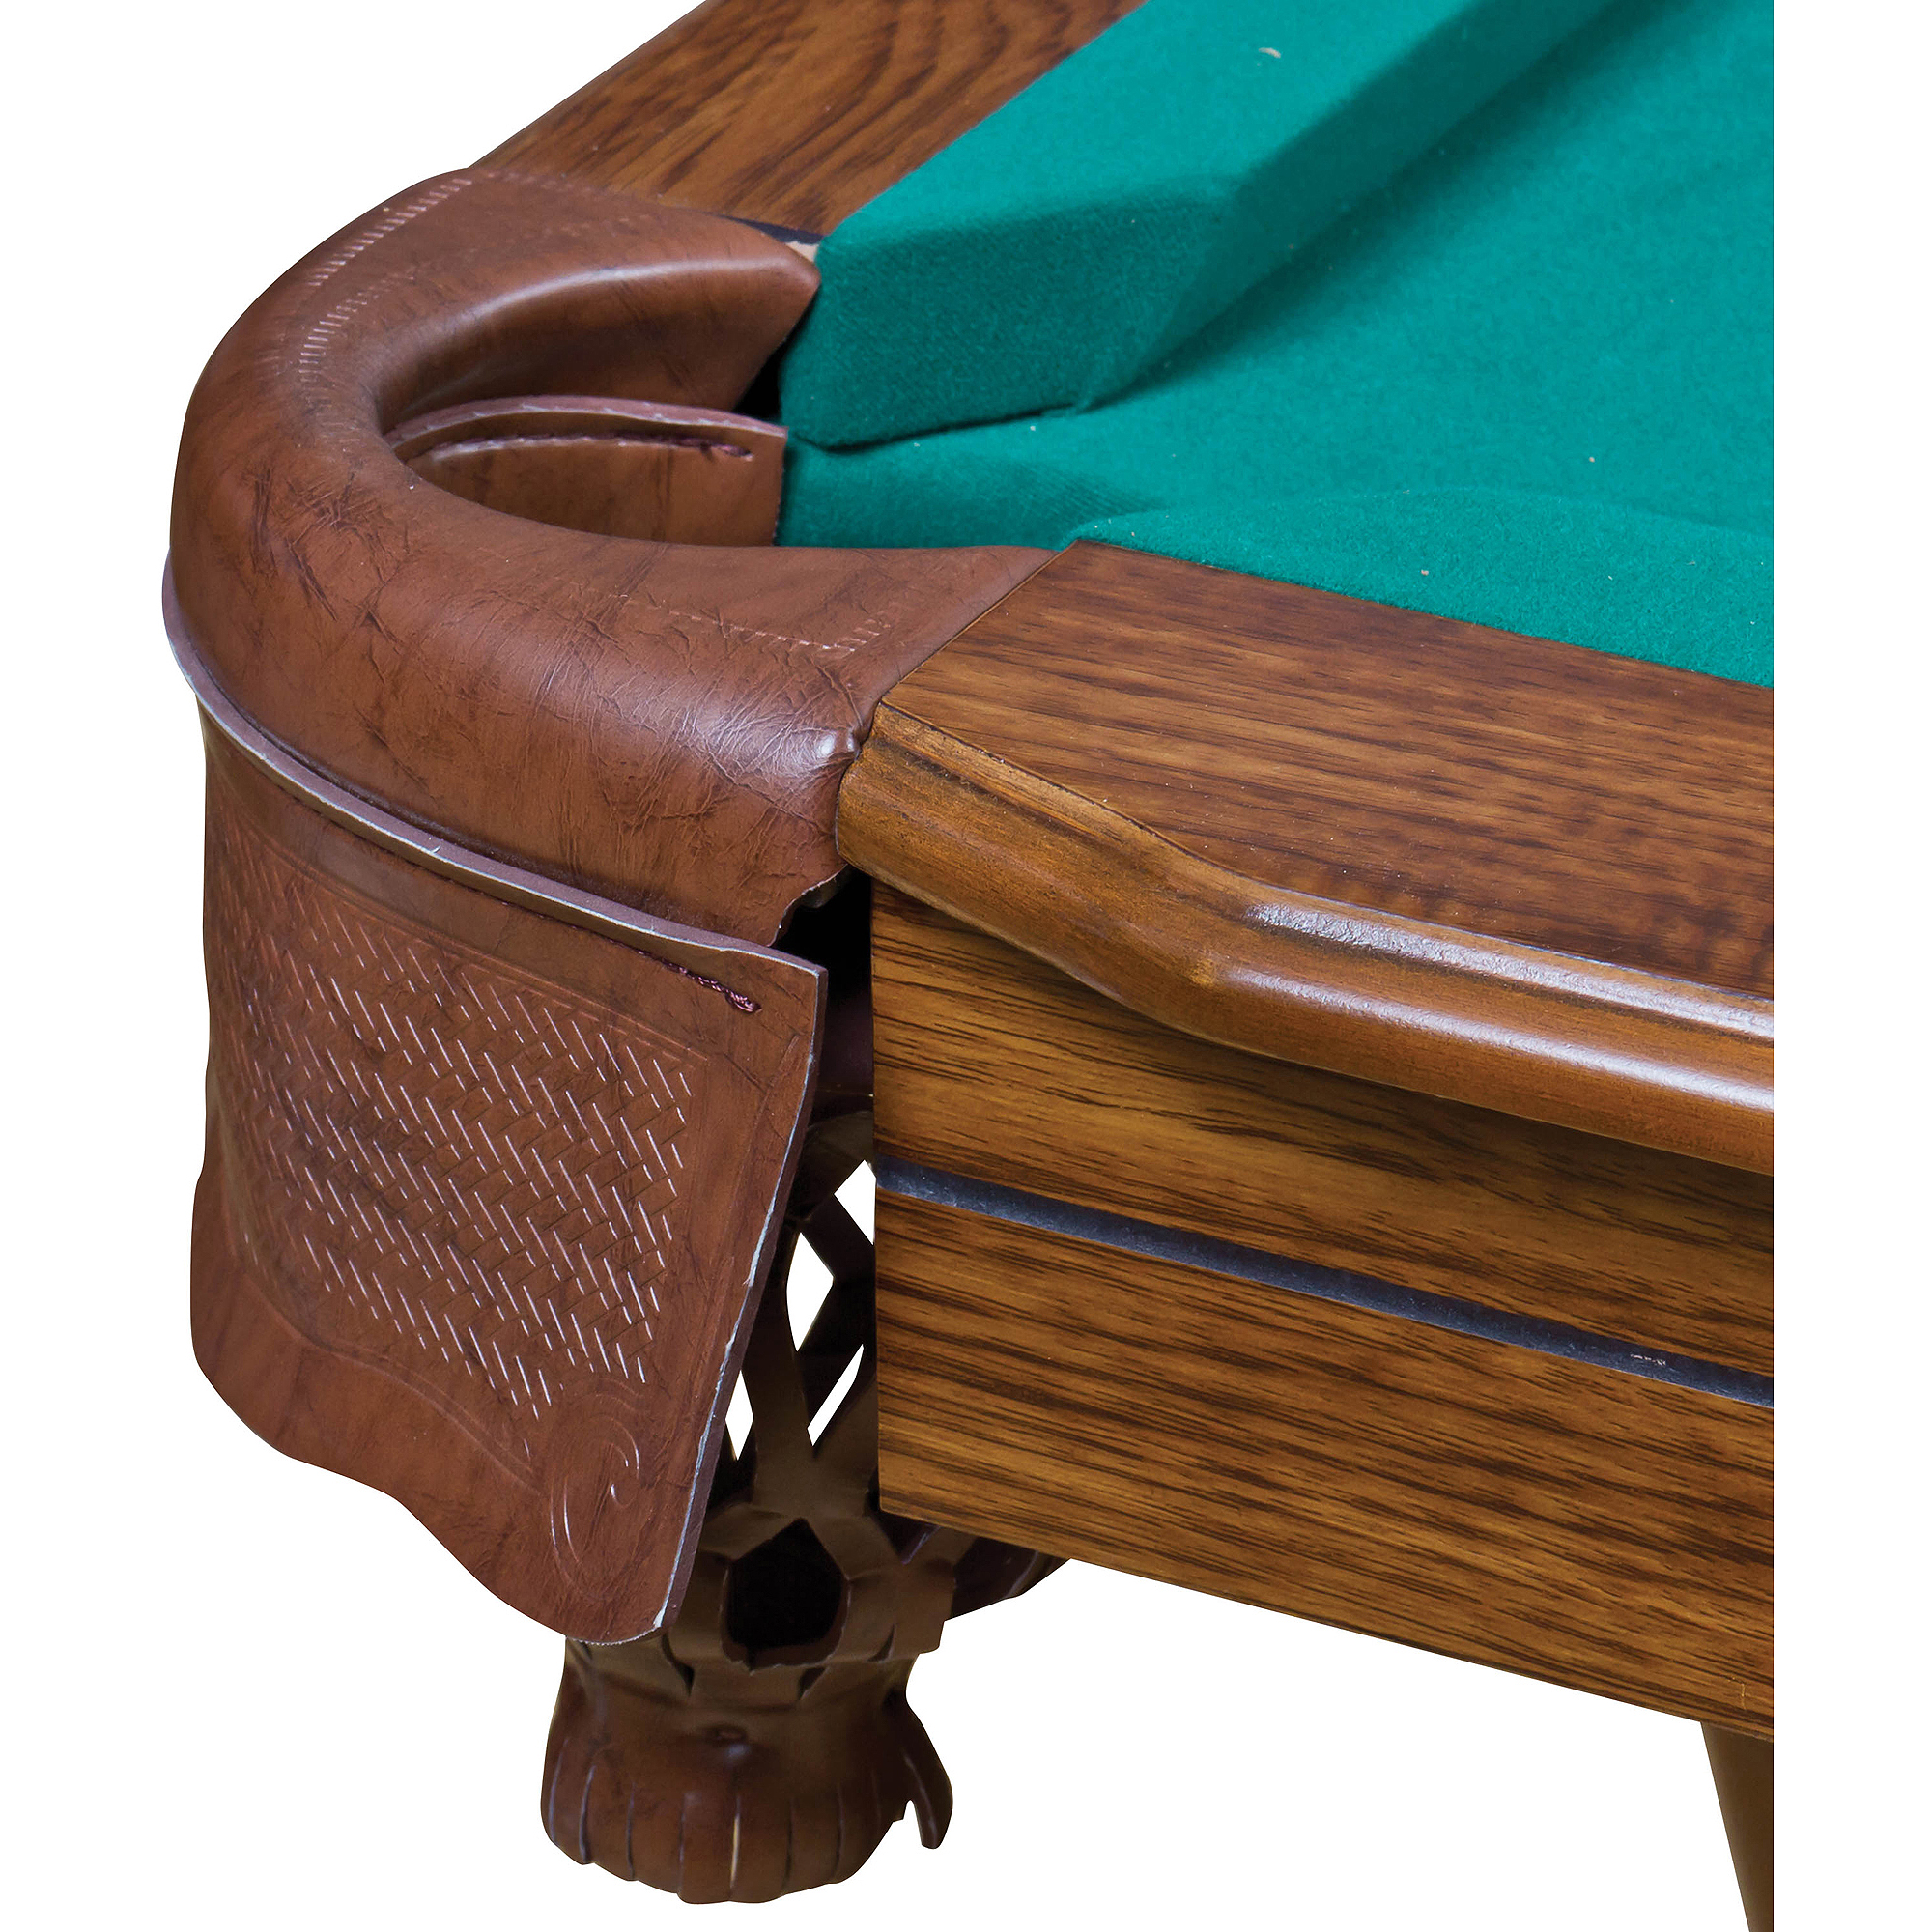 EastPoint Sports 87 Inch Brighton Billiard Pool Table Image 4 Of 7